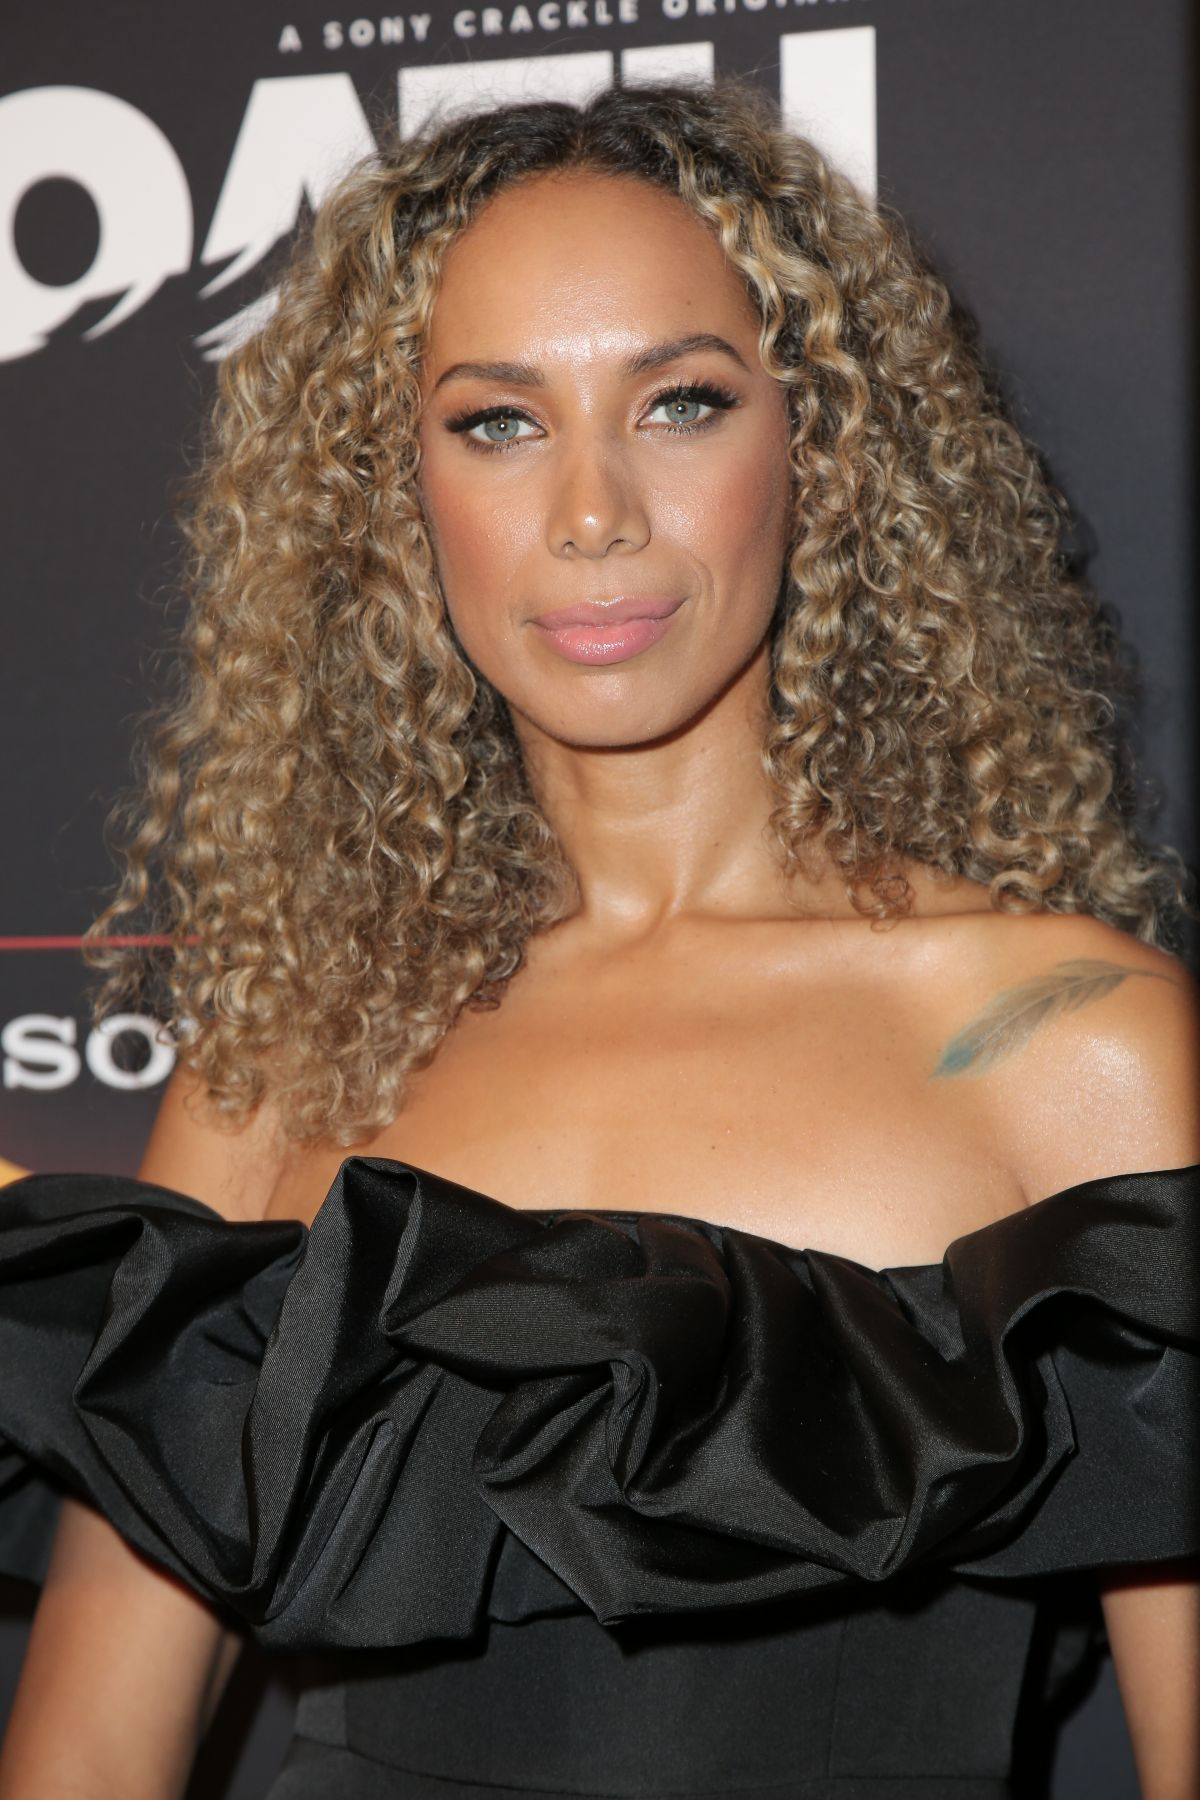 leona-lewis-at-the-oath-season-2-exclusi